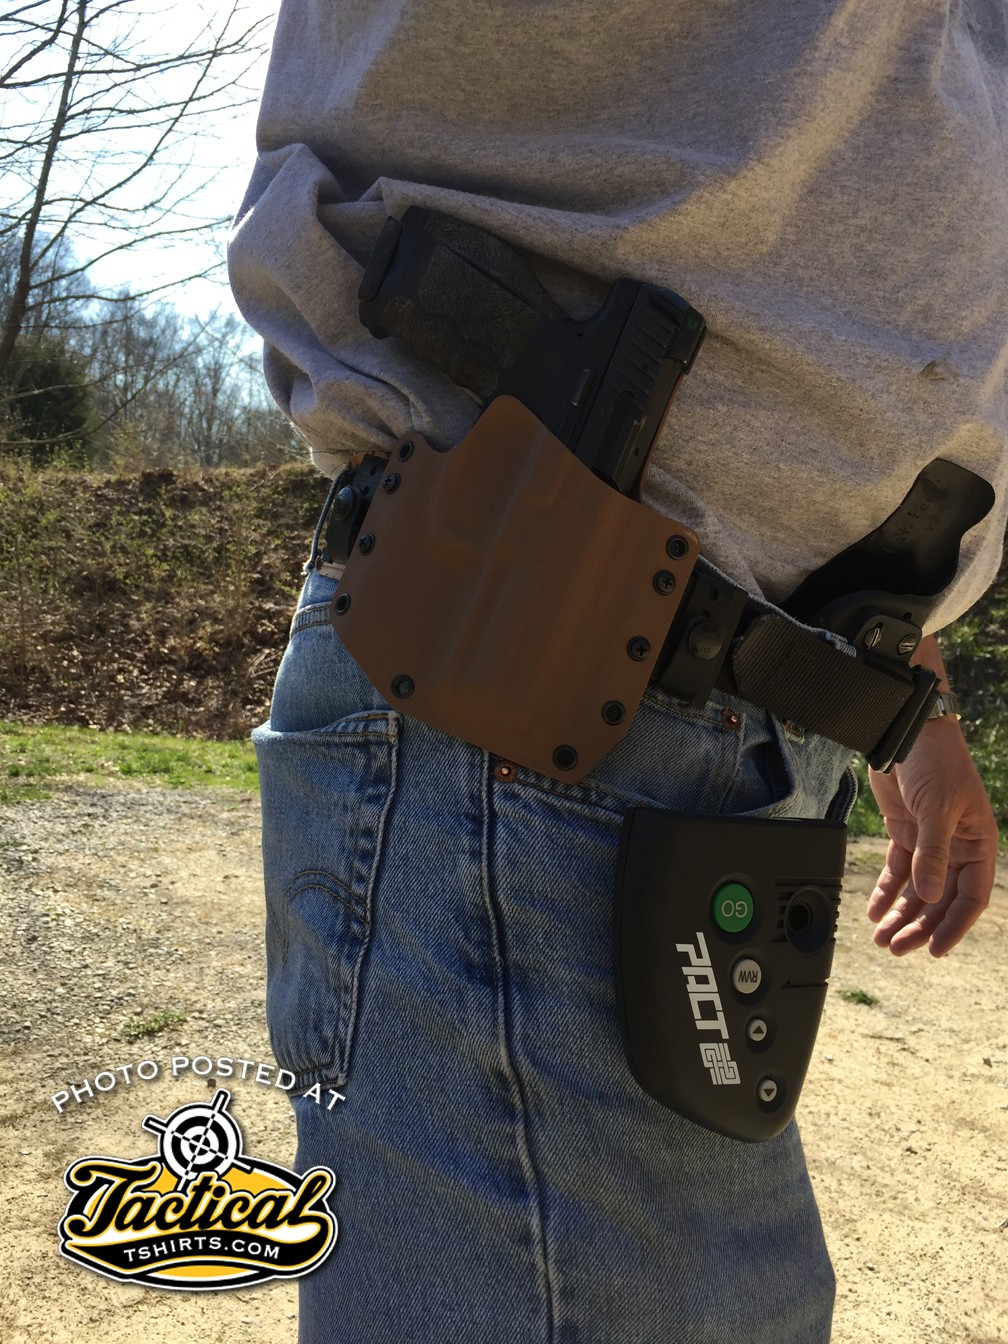 Notice two holsters? Practice for all types you use!